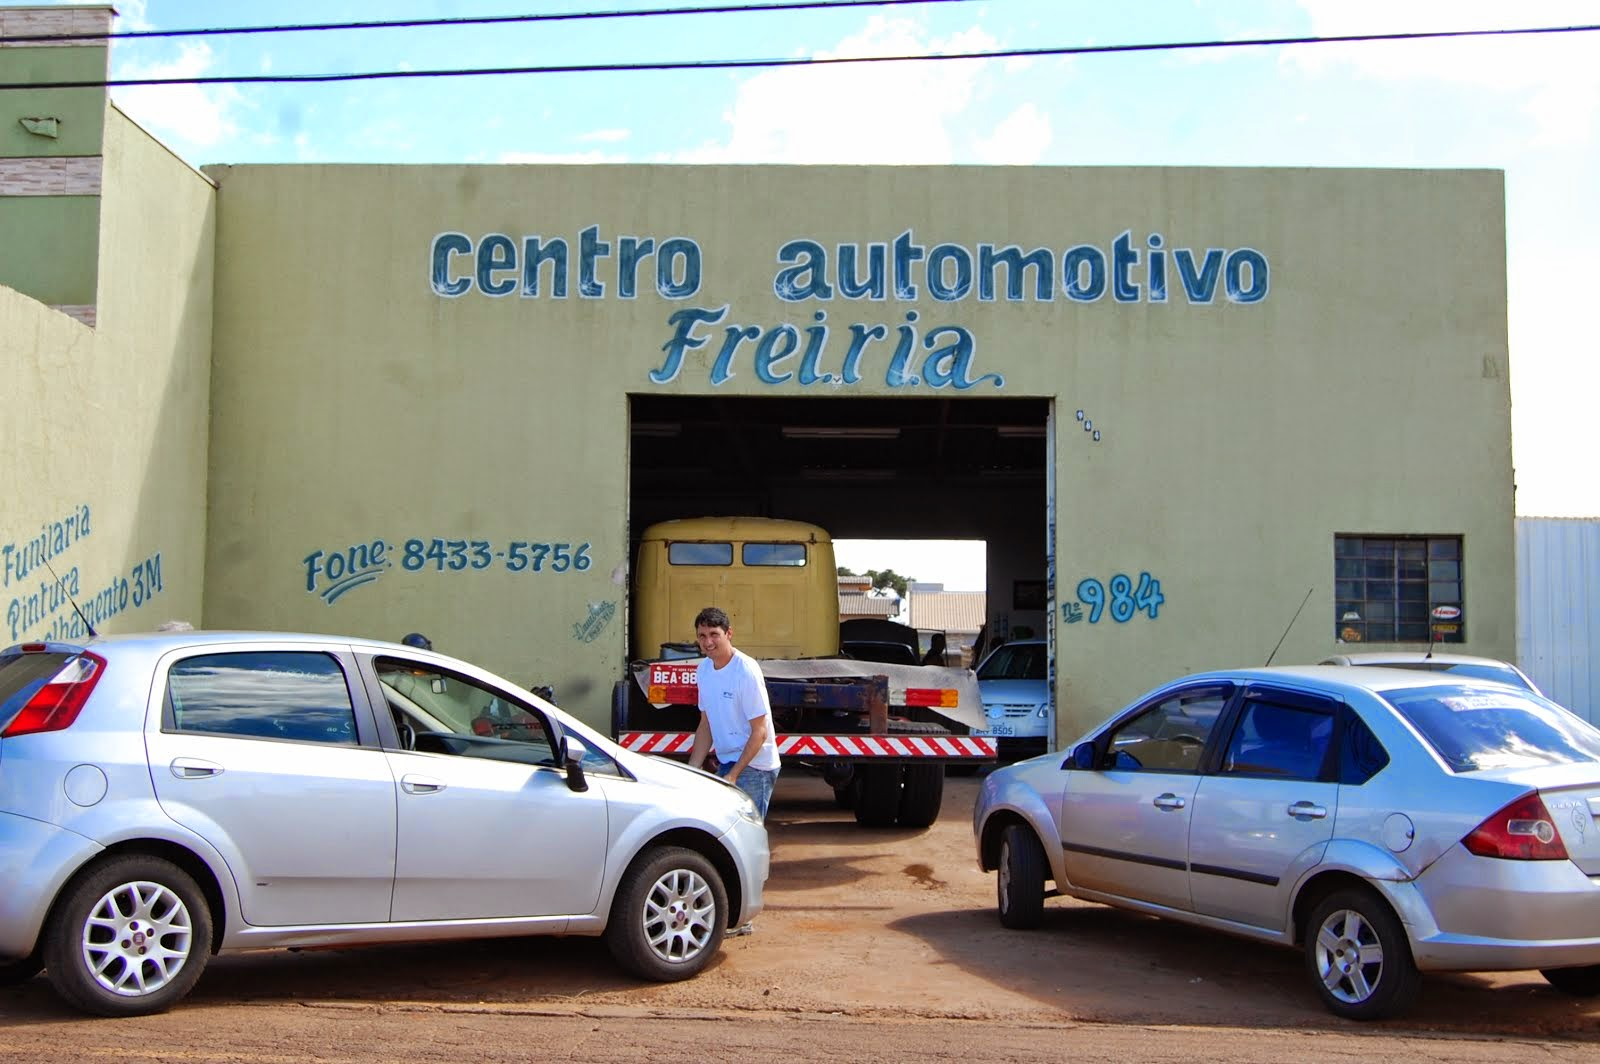 CENTRO AUTOMOTIVO FREIRIA...